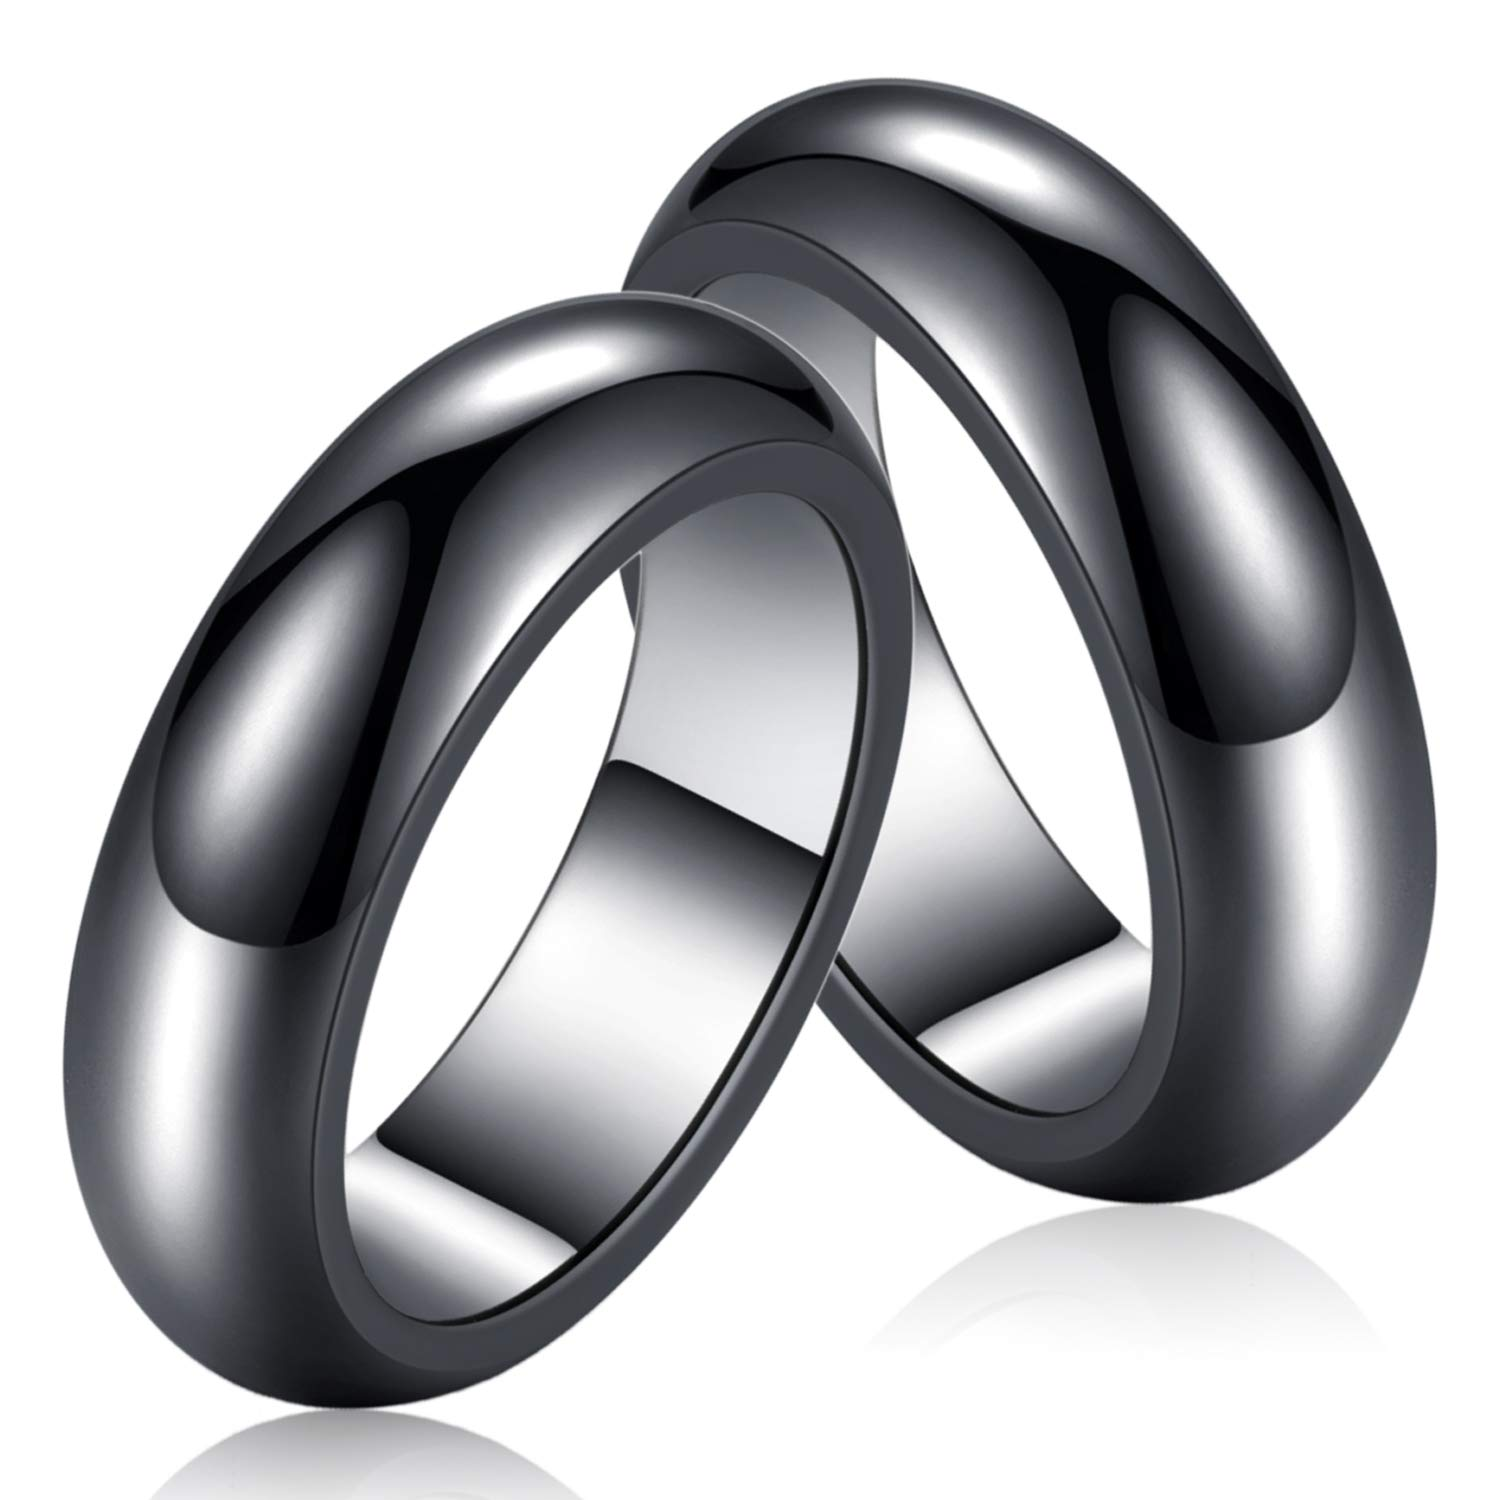 YANCHUN Hematite Rings for Women Men Black Hematite Stone Ring Anxiety Aabsorbs Negative Energy Ring Healing Rings Size 6-10